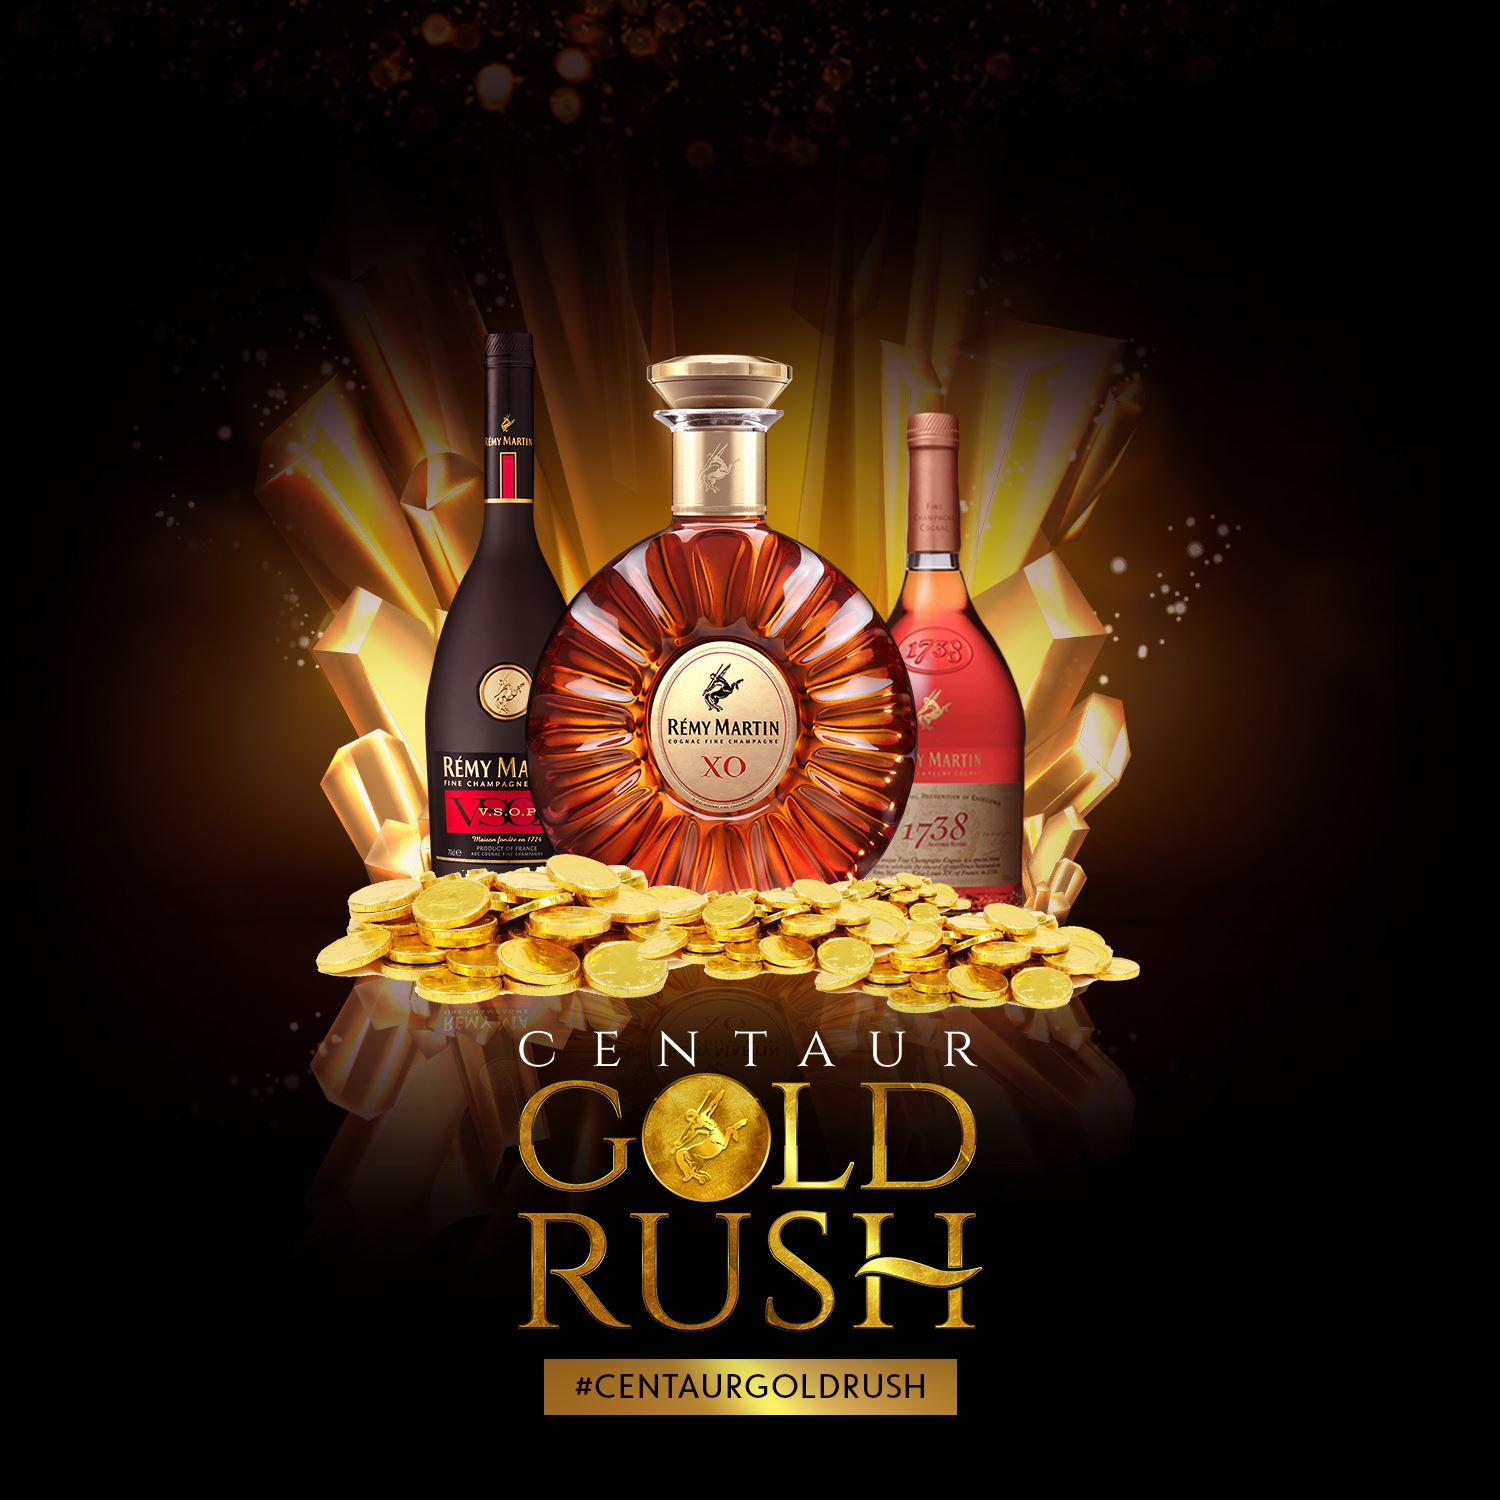 Buy and Win #CentaurGoldRush Coin And other amazing Prizes in Remy Martin Giveaway.